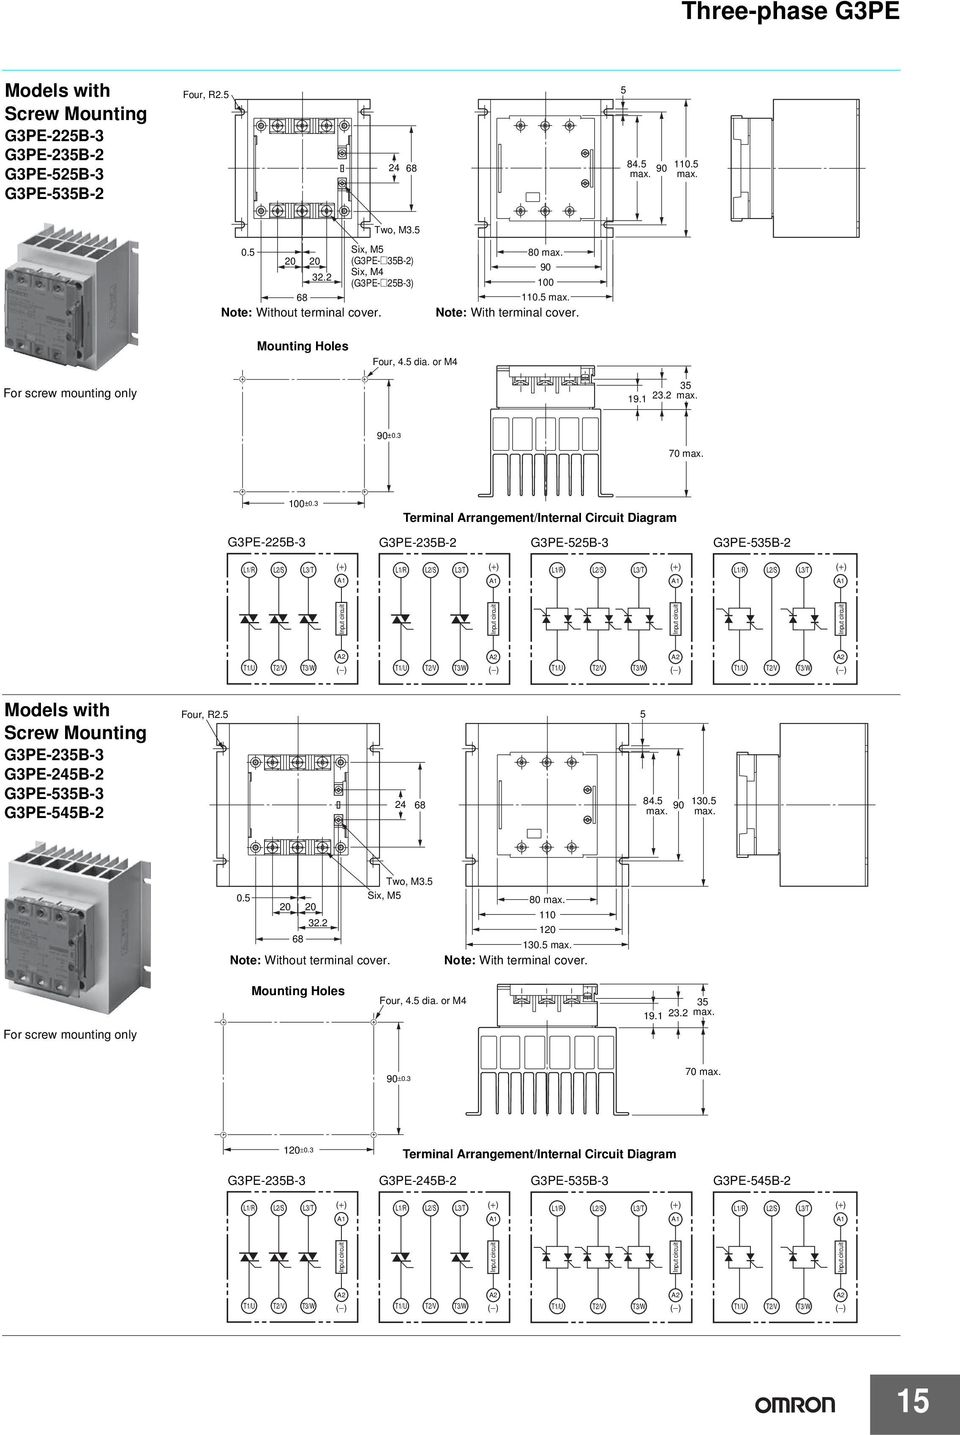 3 B-3 Terminal Arrangement/Internal Circuit Diagram 3B- B-3 3B- L3/T L3/T L3/T L3/T Models with Screw Mounting 3B-3 4B- 3B-3 4B- Four, R. 4 84. 9 13.. 3. Note: Without terminal cover.